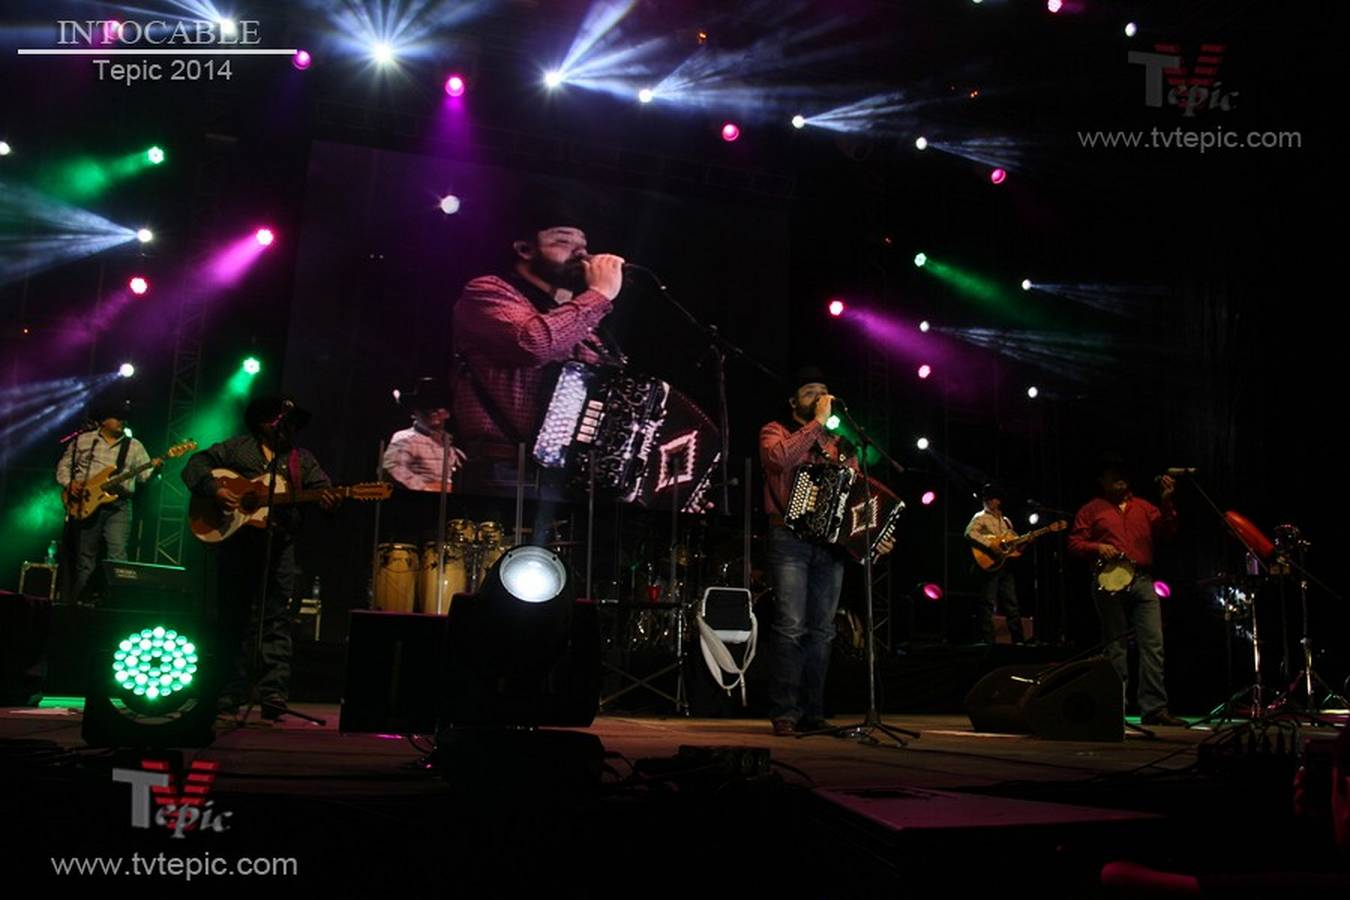 Intocable_10